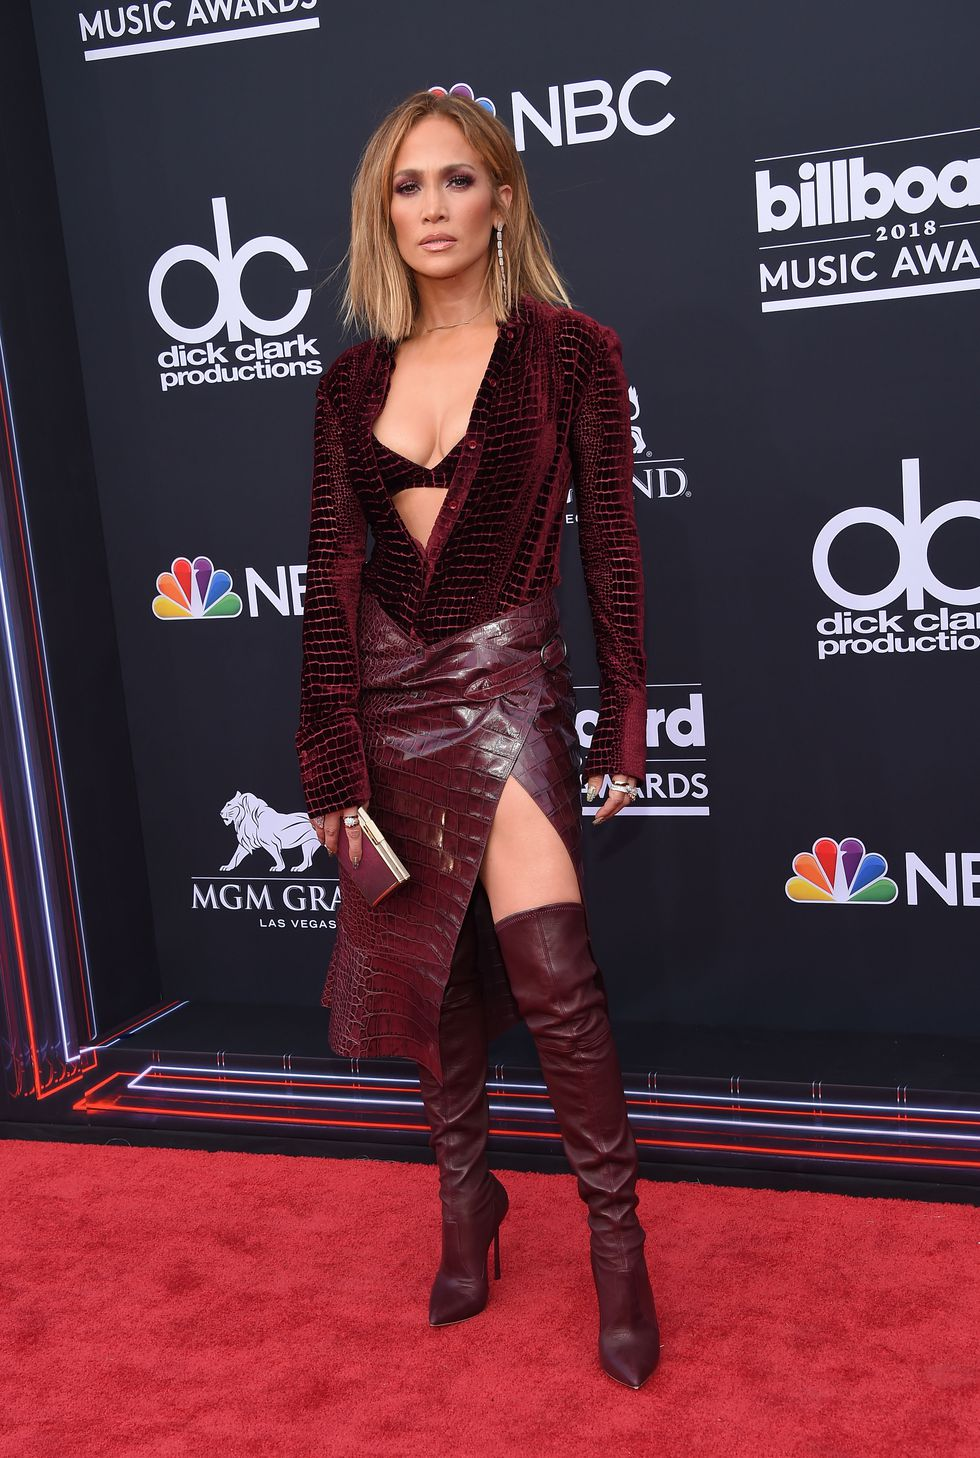 20182105-billboard-music-award-2018-01